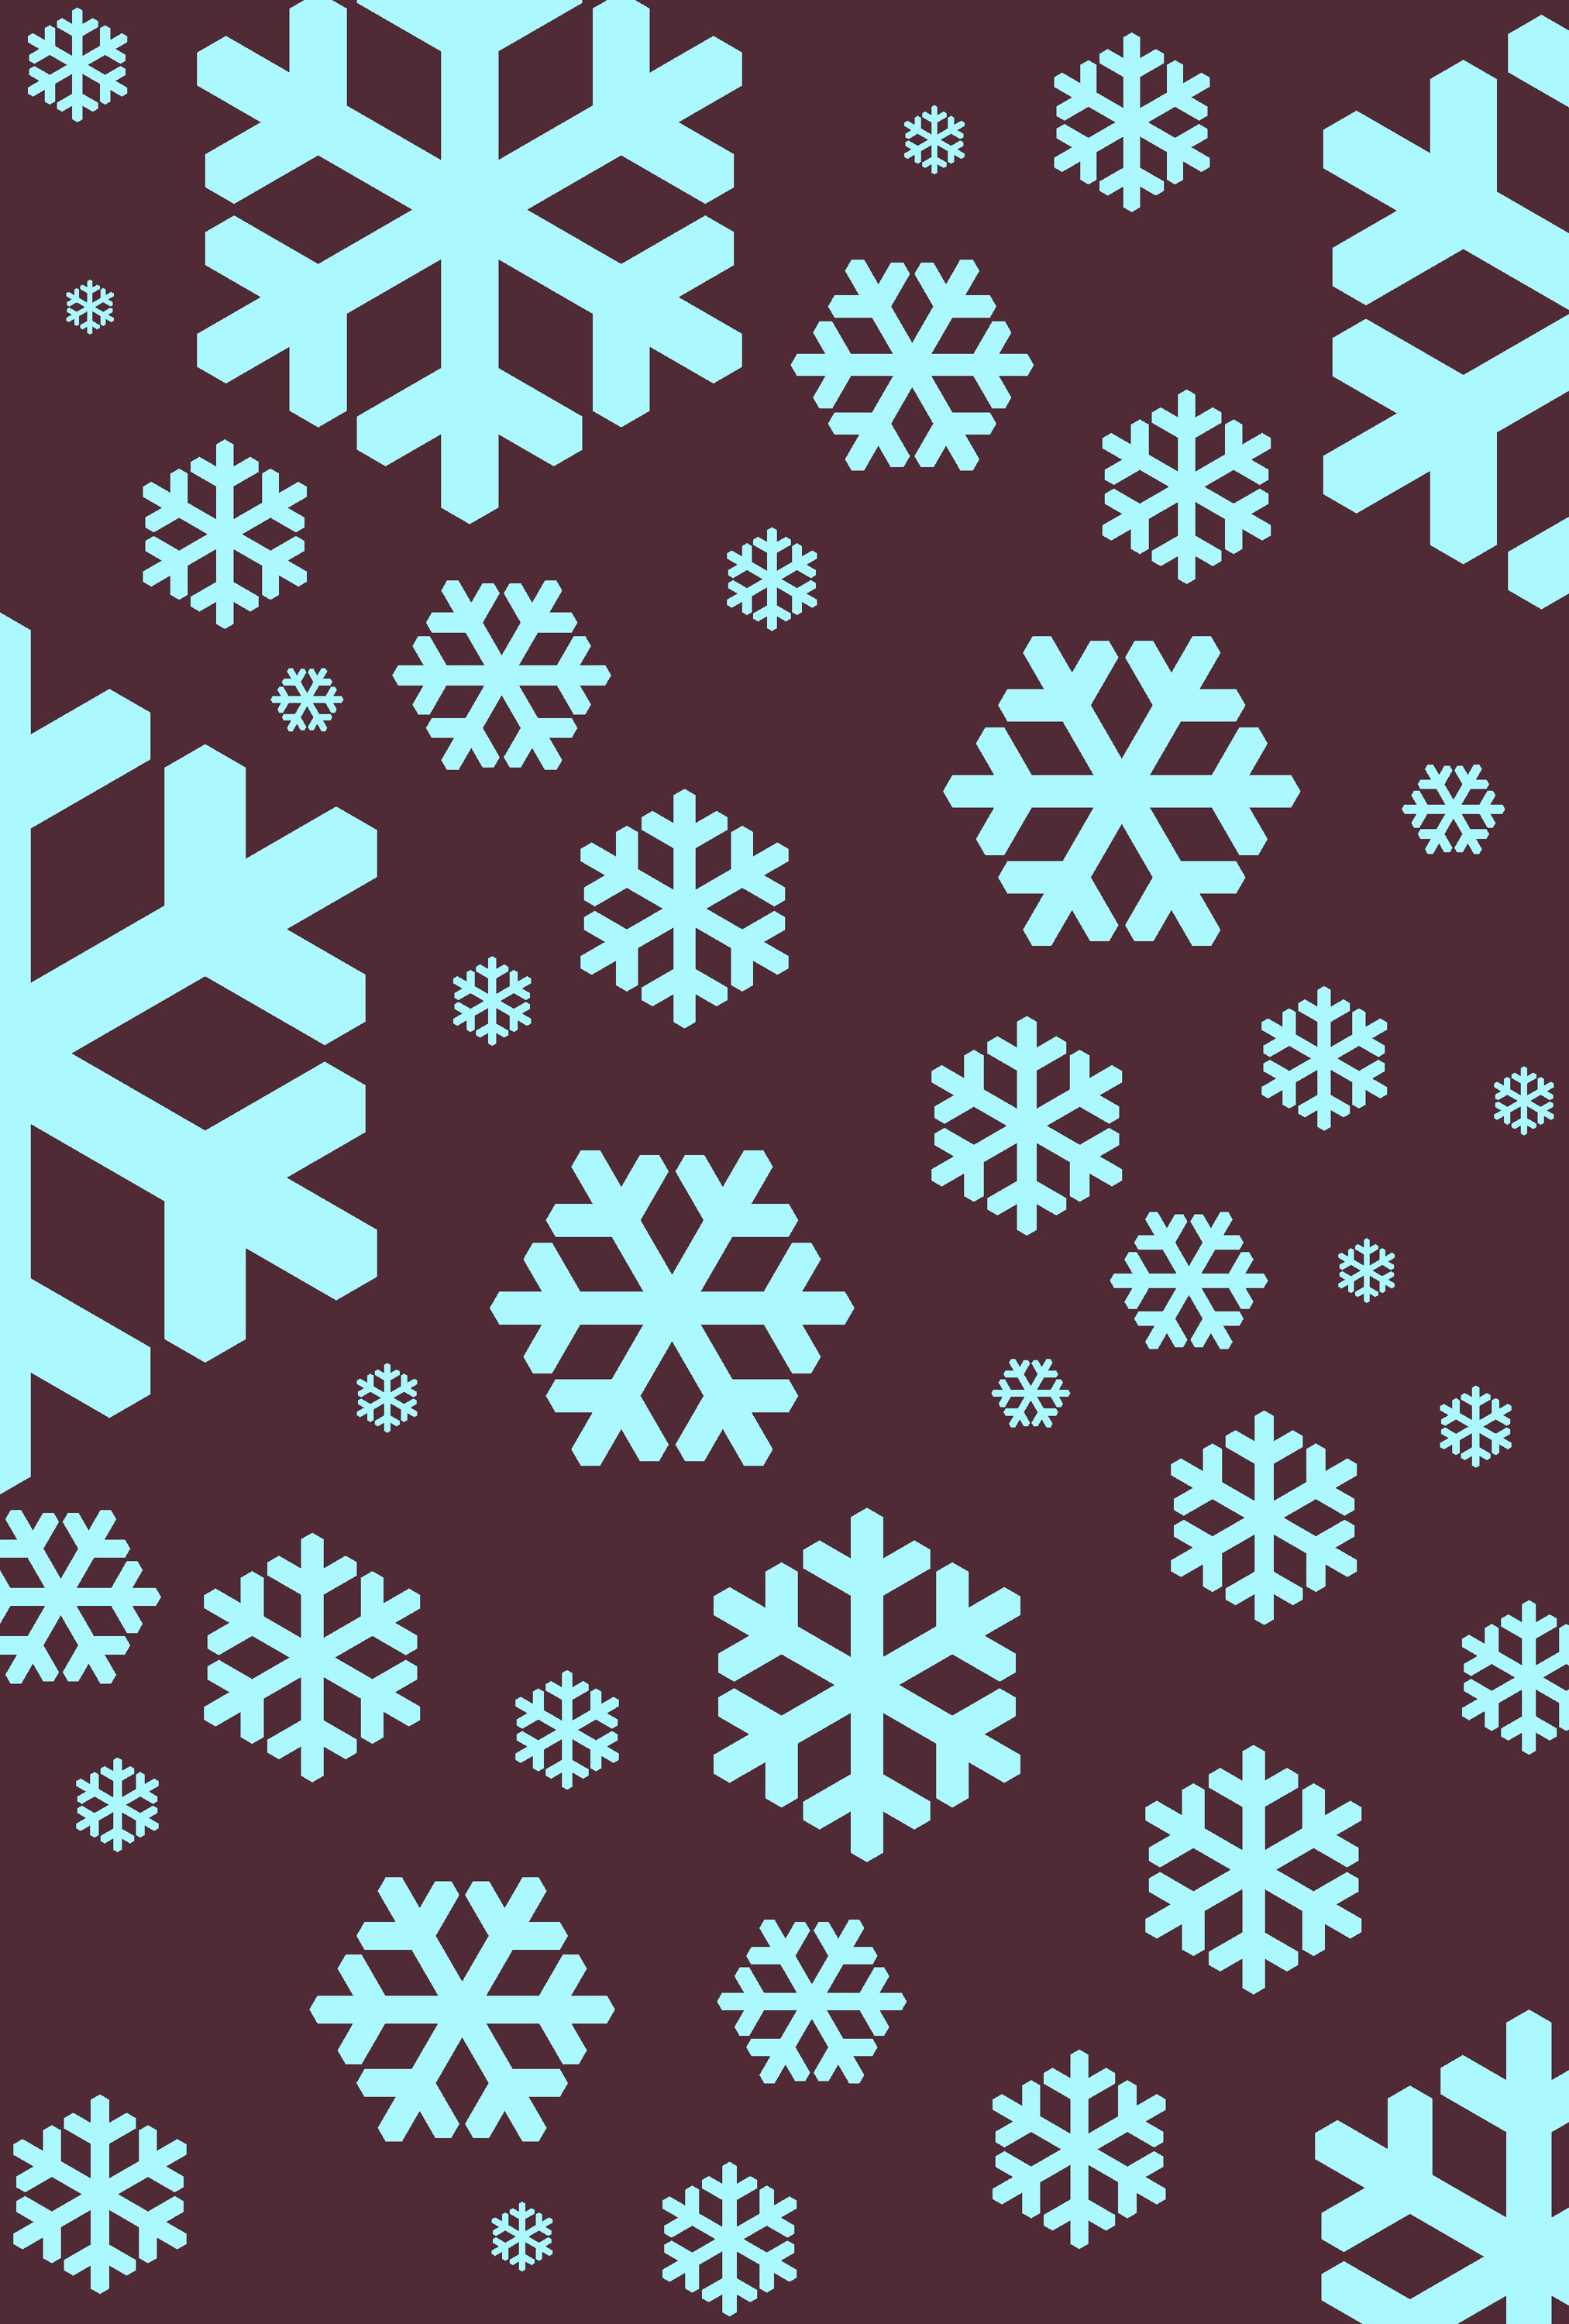 a seasonal winter background of falling blue snow flakes